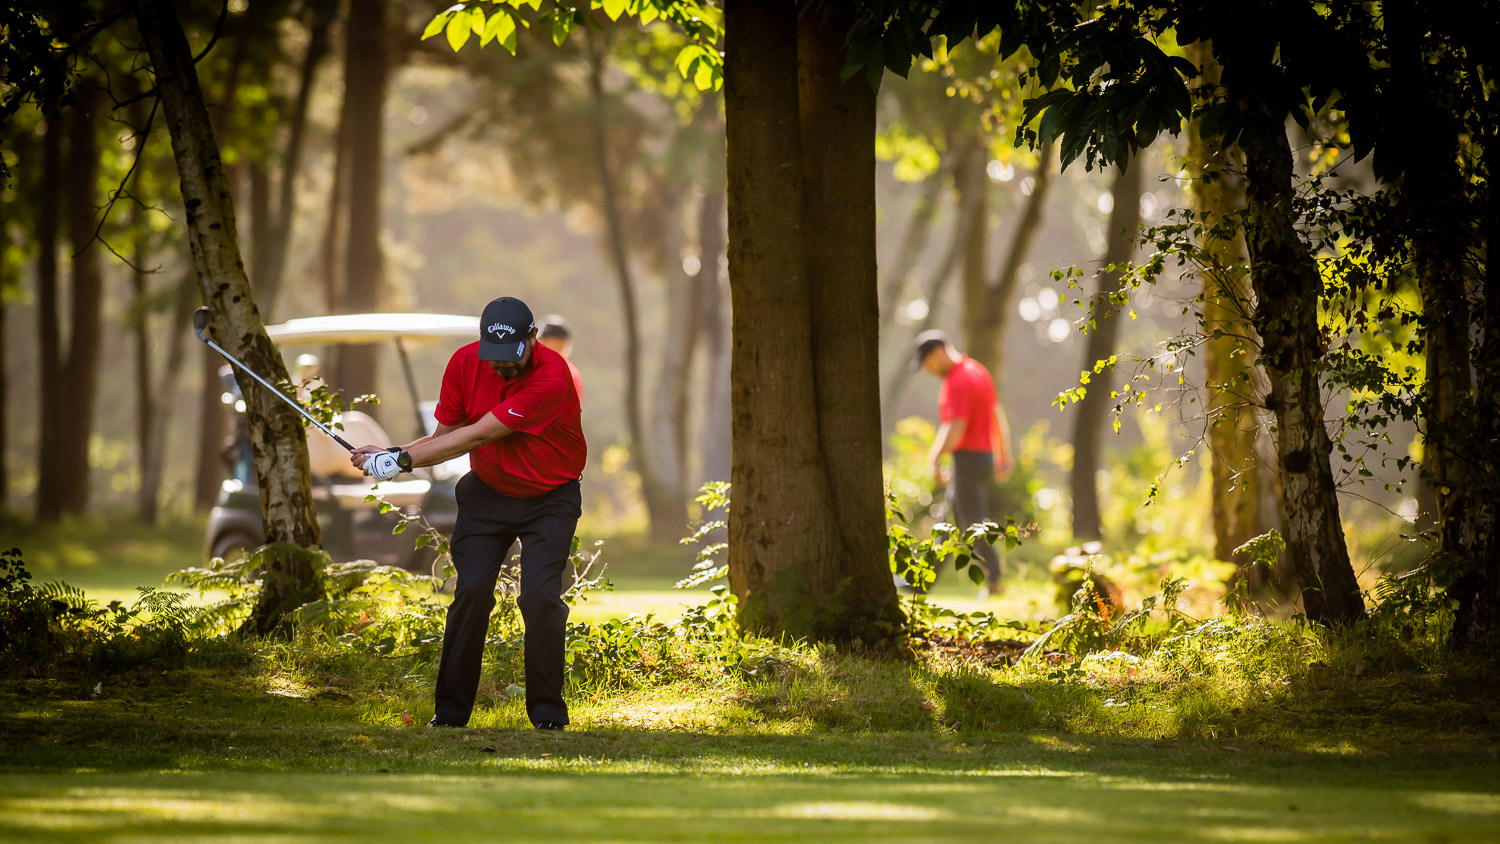 golfer in red plays from trees